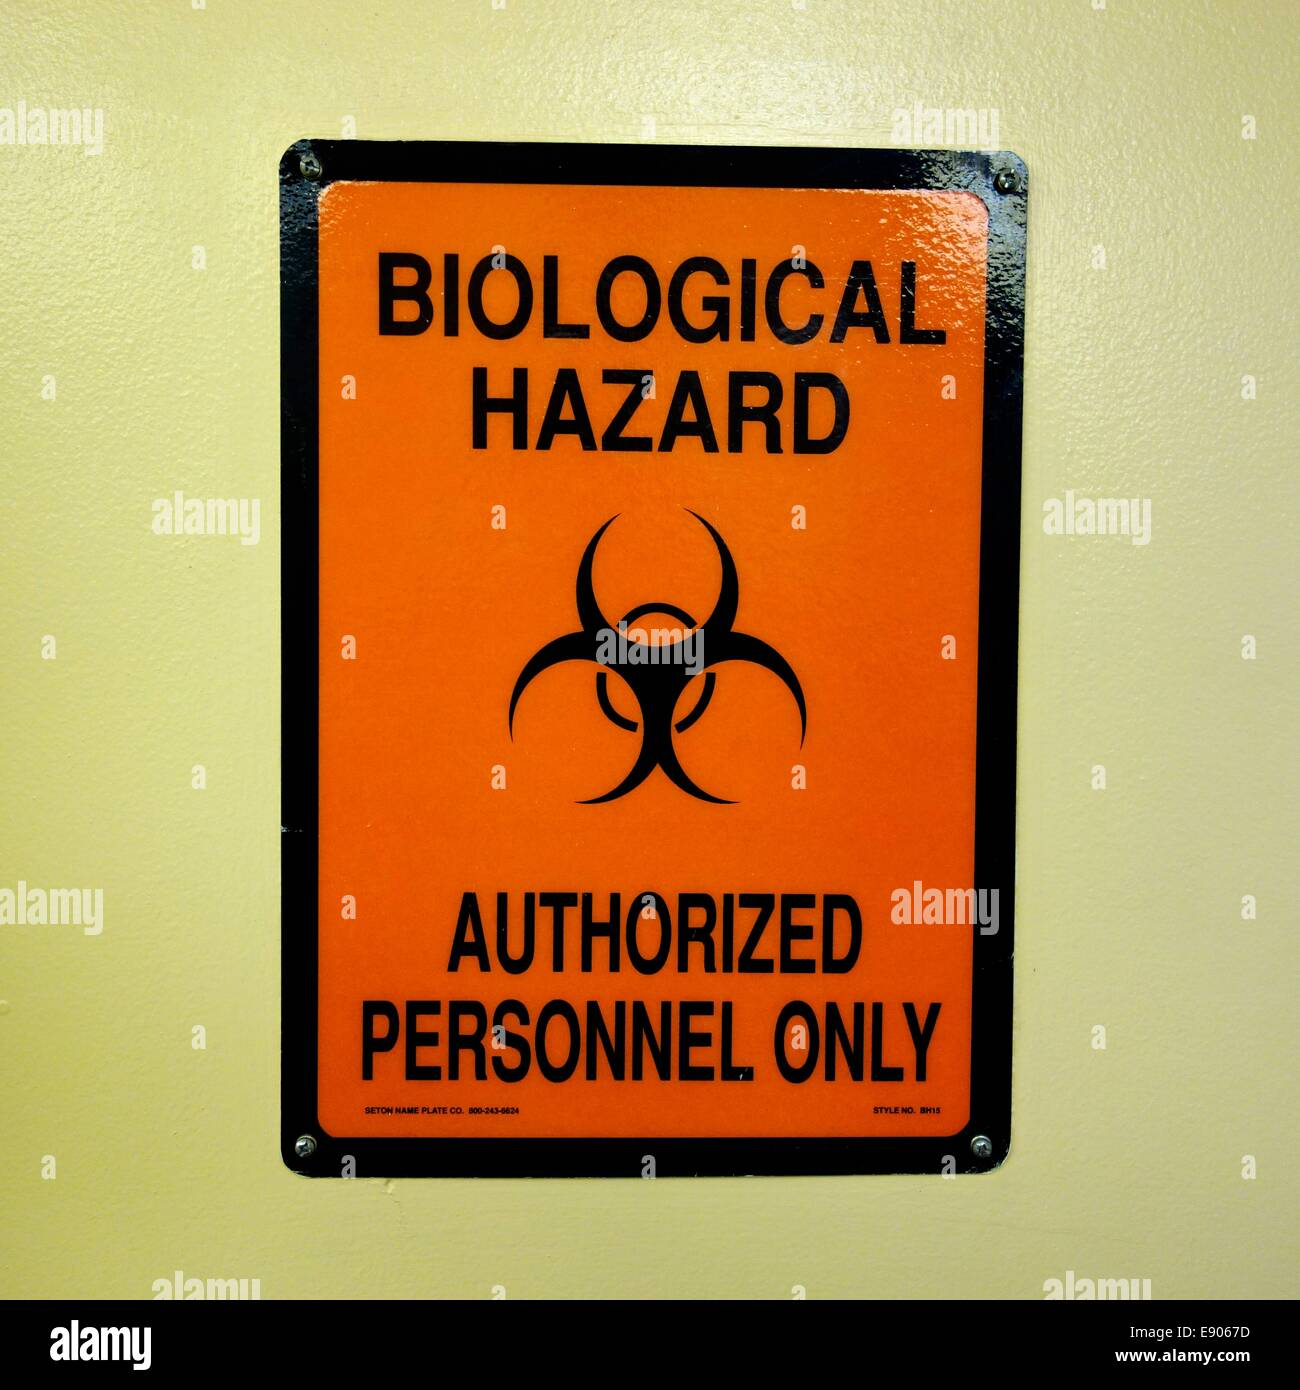 biological hazard sign stock photo 74378289 alamy